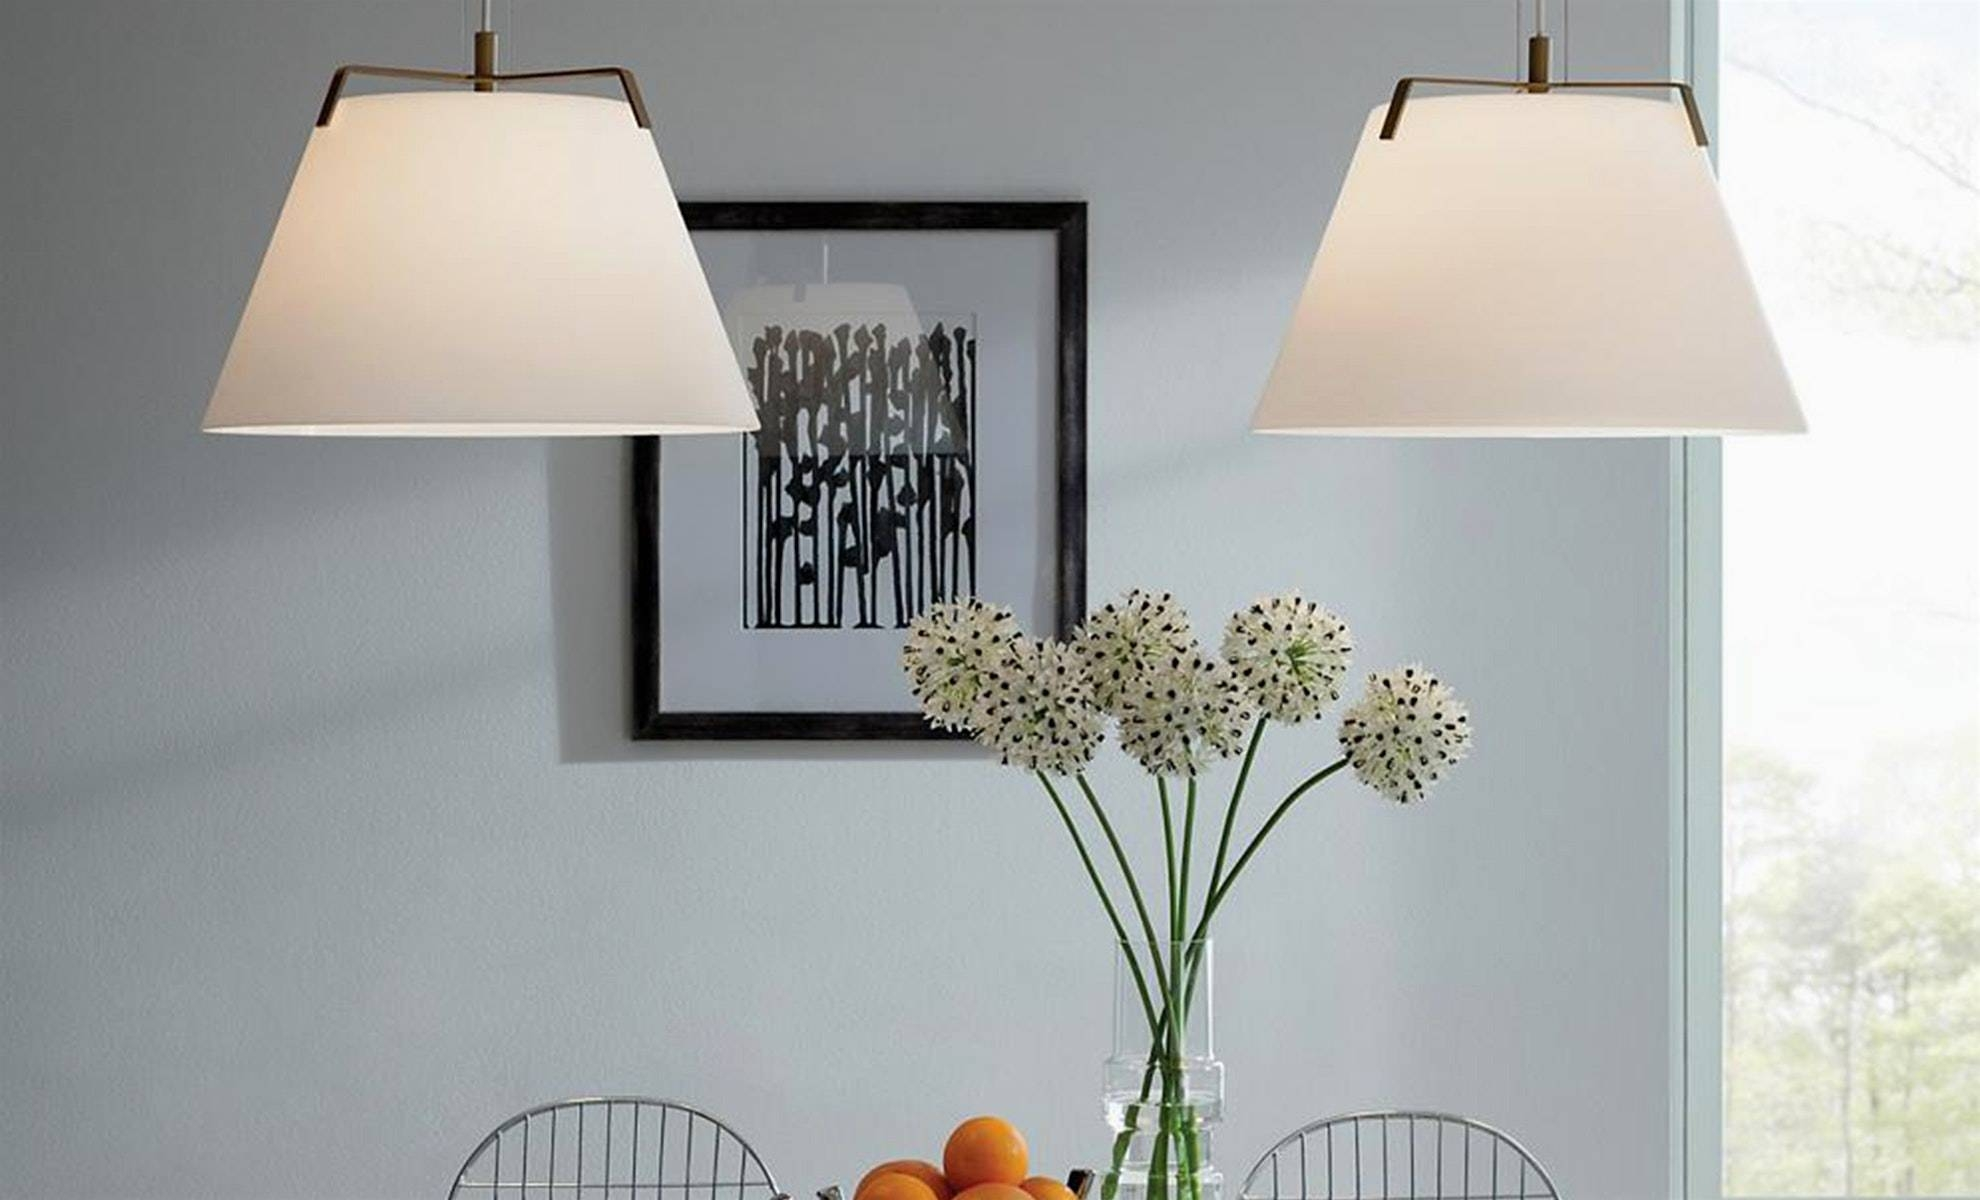 Clearance Pendant Light Ideas regarding Clearance Pendant Lighting (Image 3 of 15)